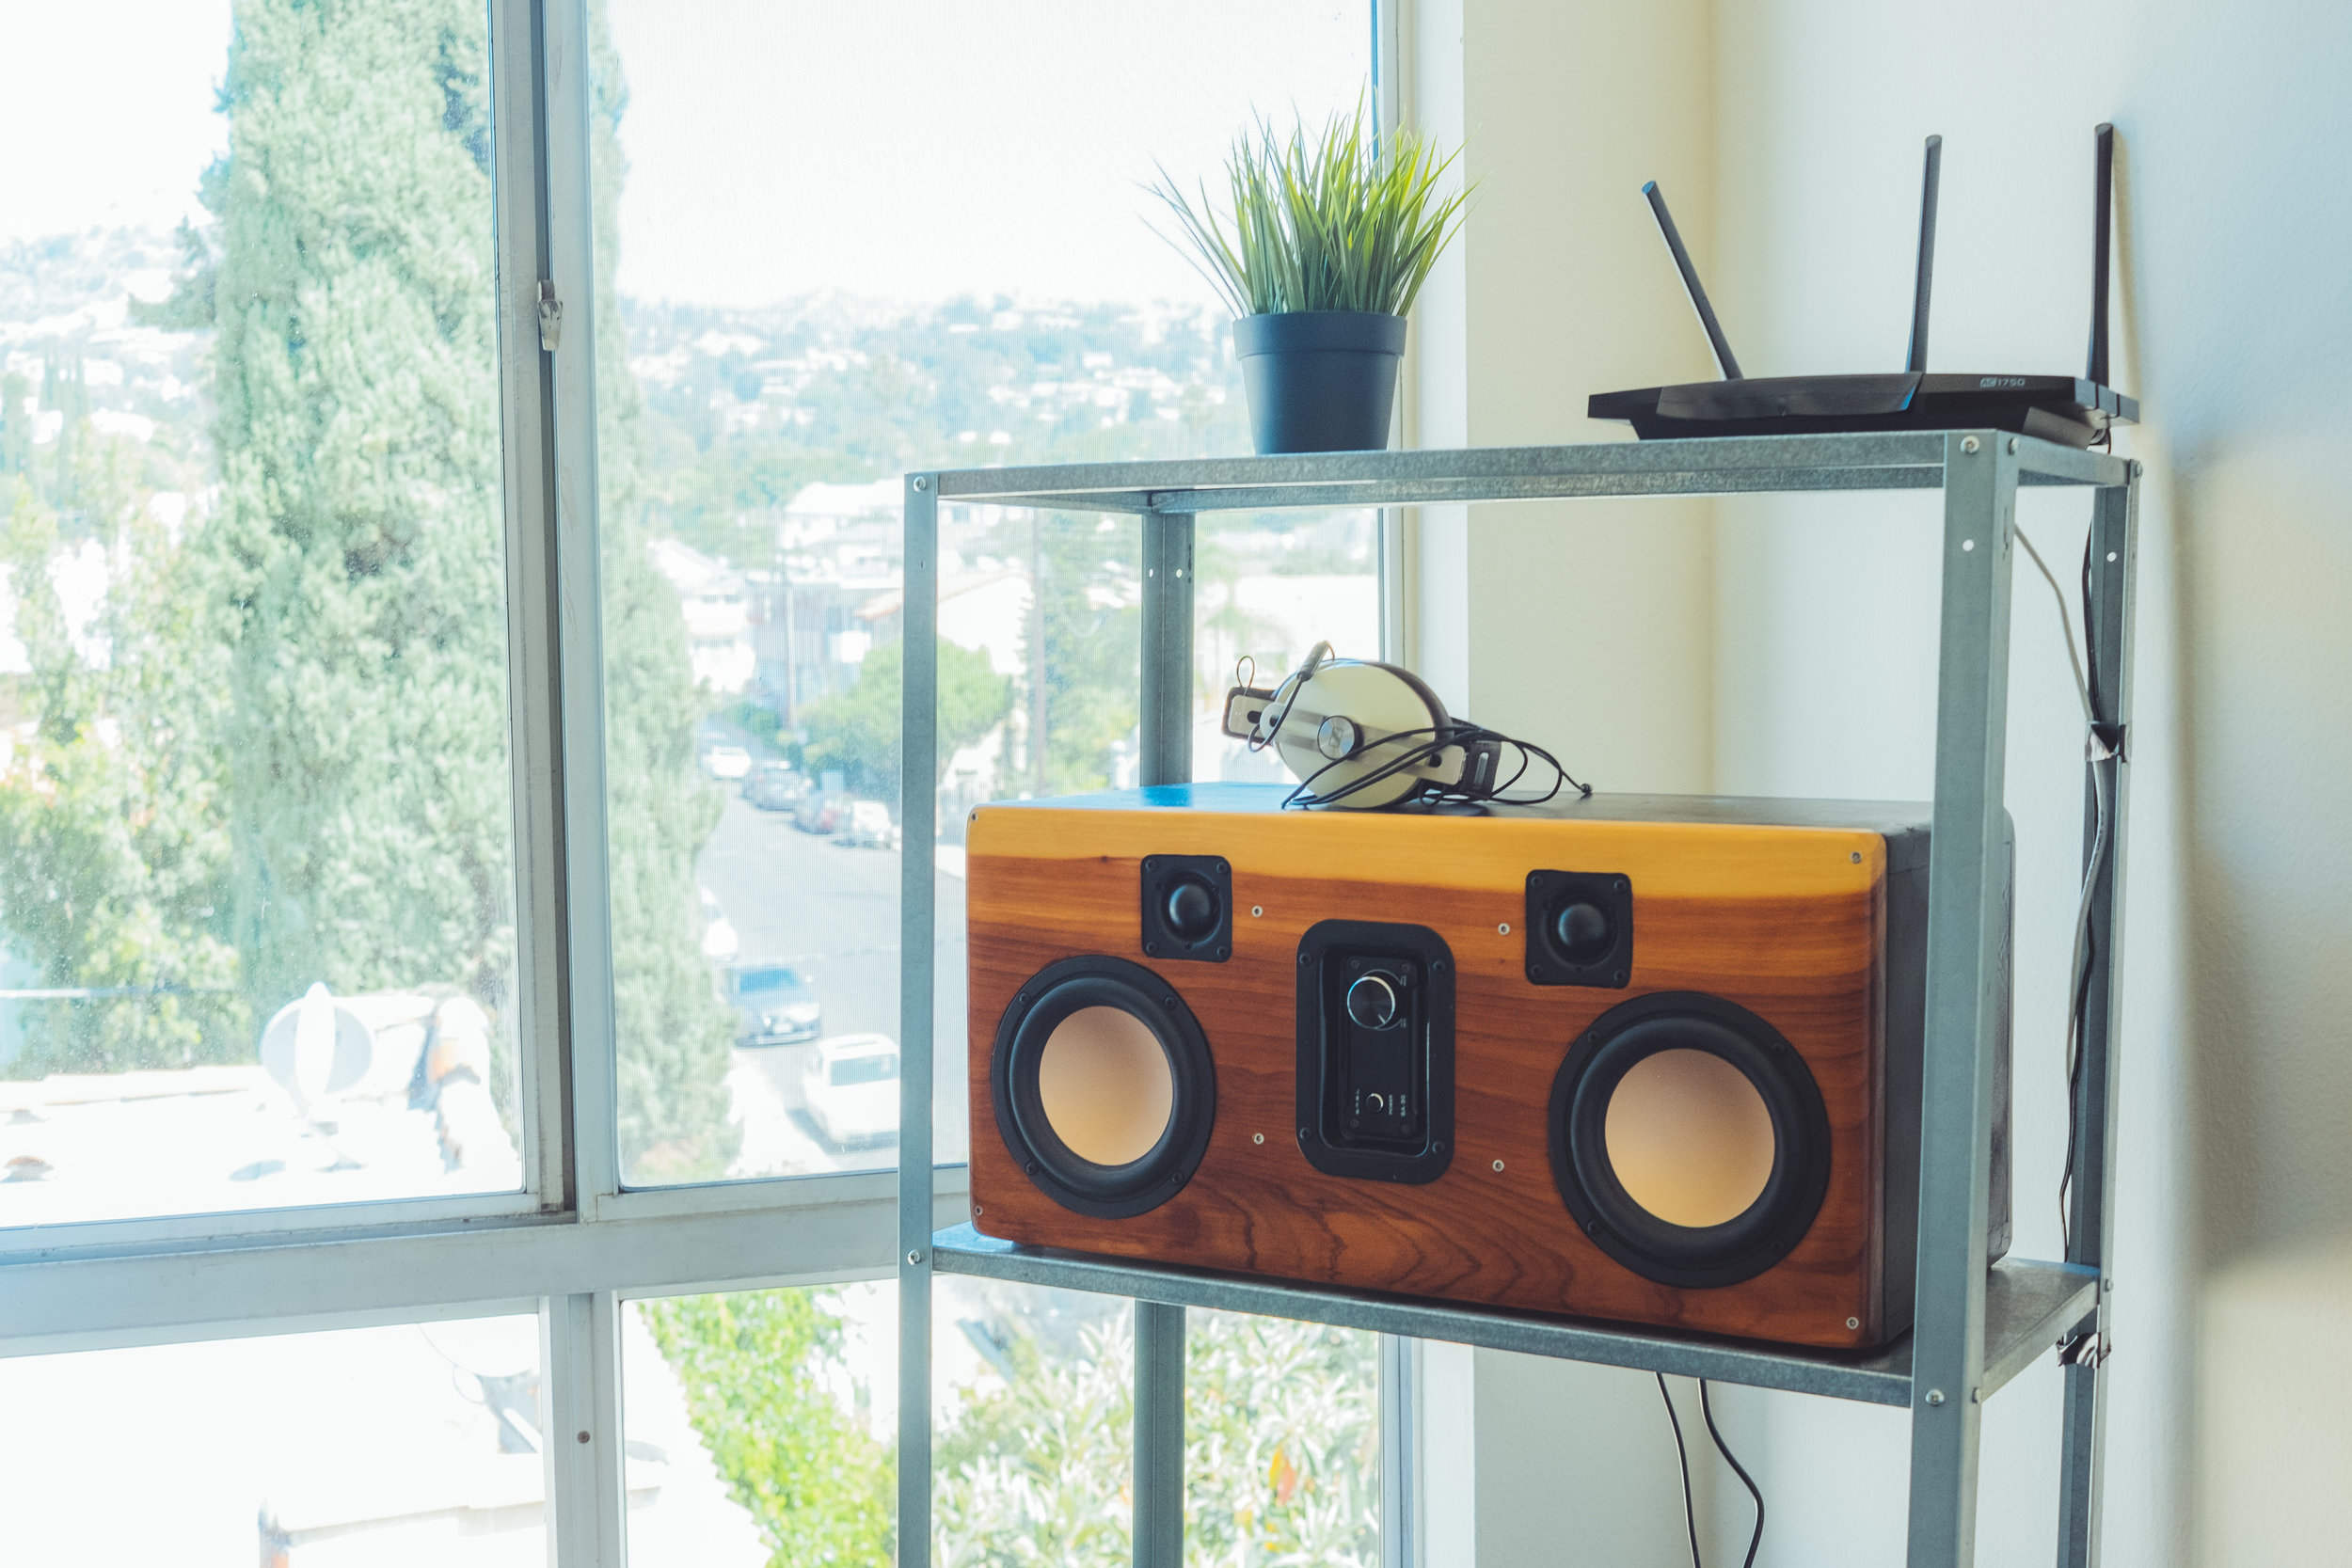 the crate - designed and built my own sound system